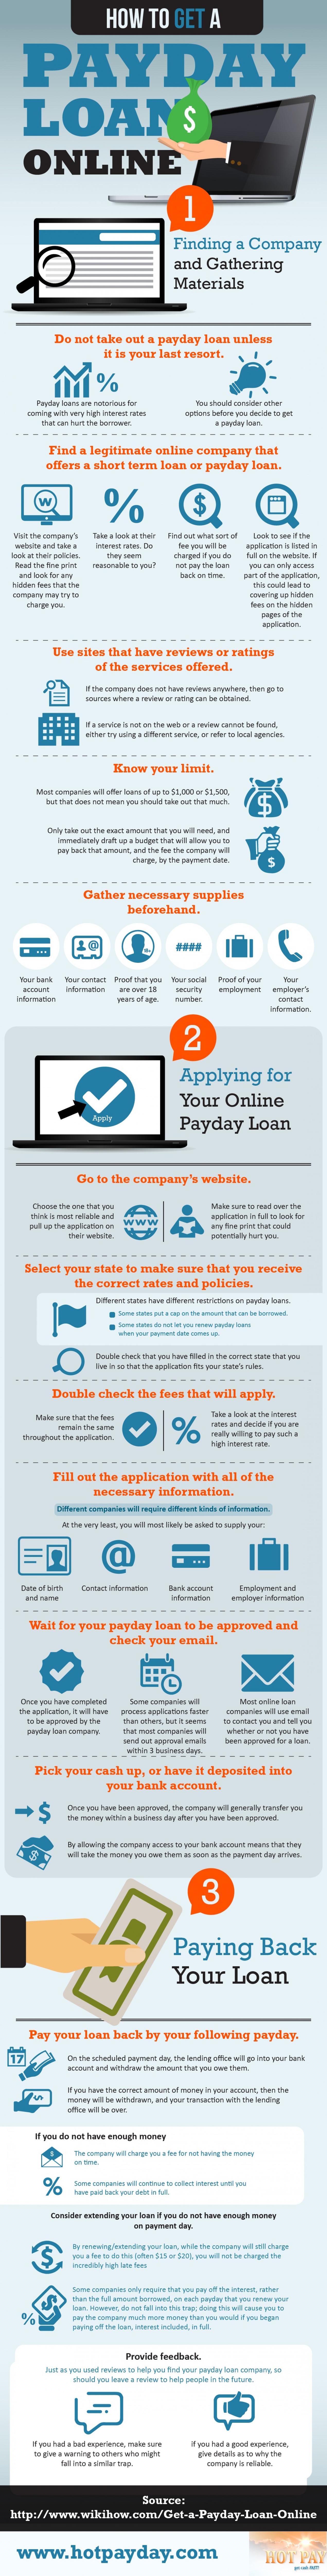 Payday loans for centrelink benefits picture 10